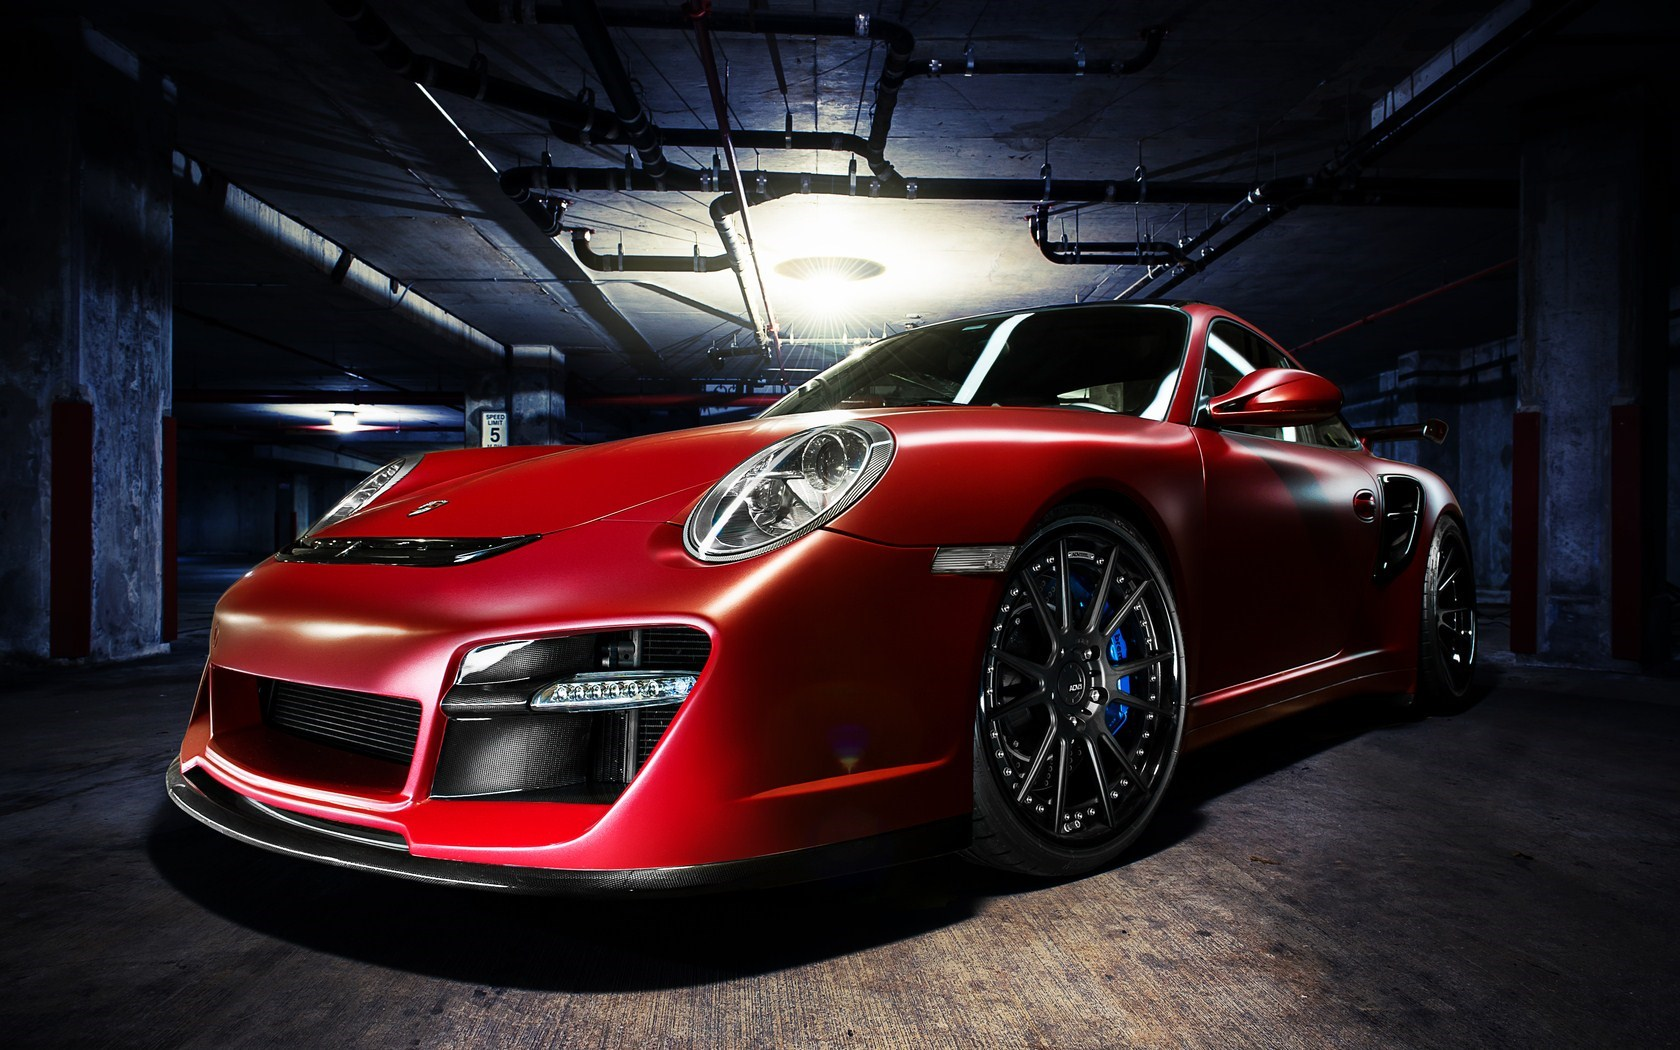 Porsche 911 Turbo Red Car Garage Photo